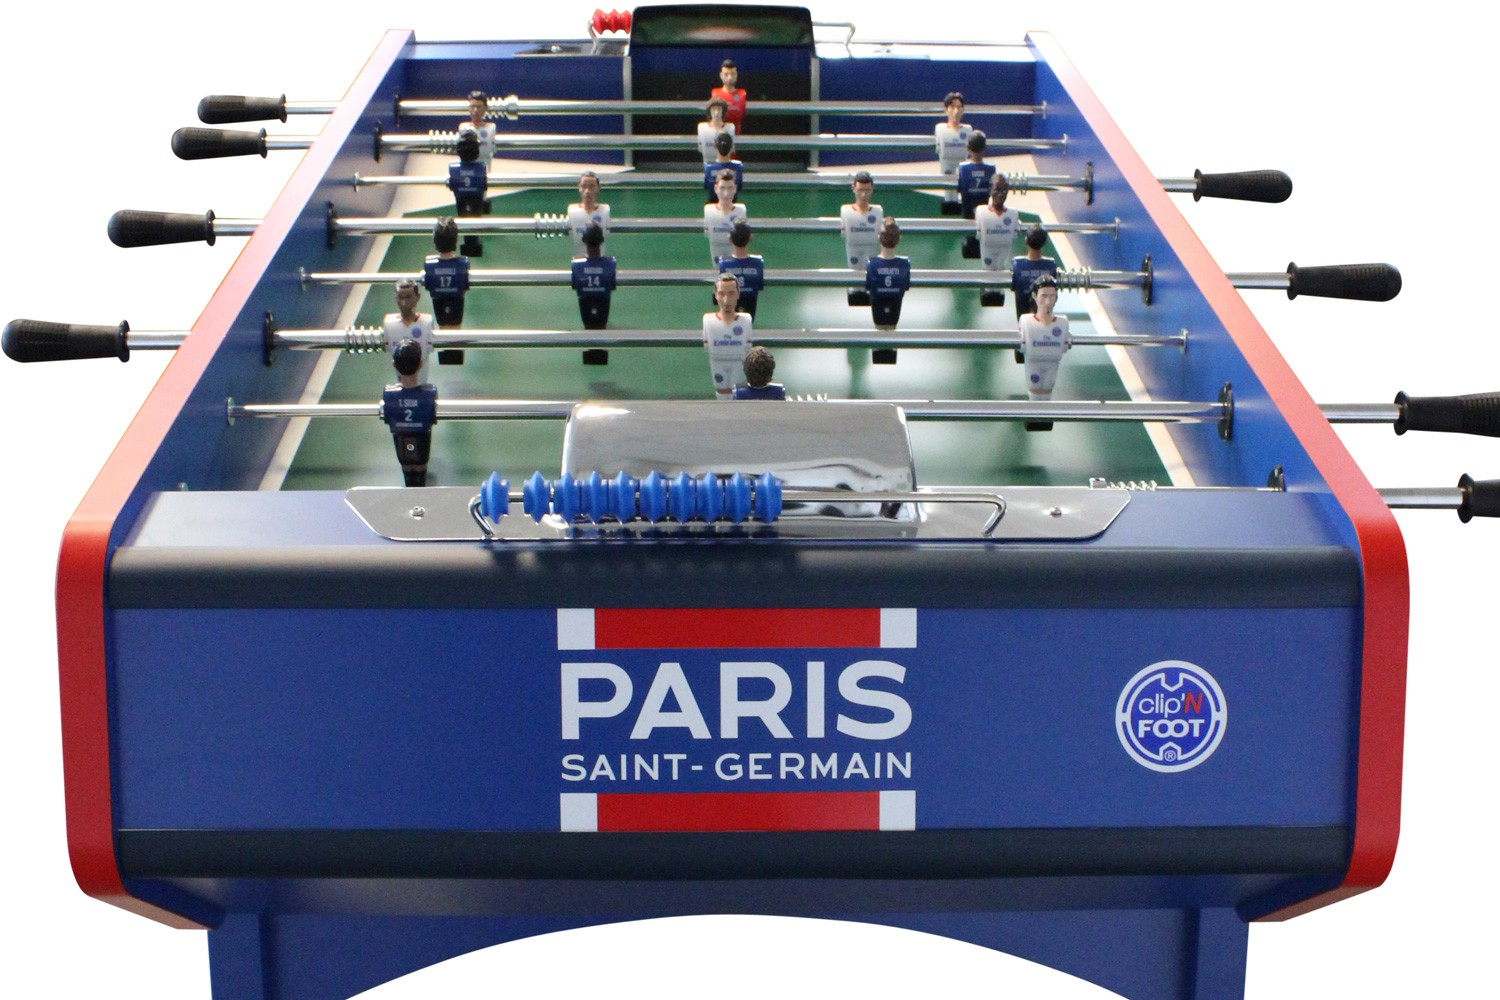 baby foot a paris